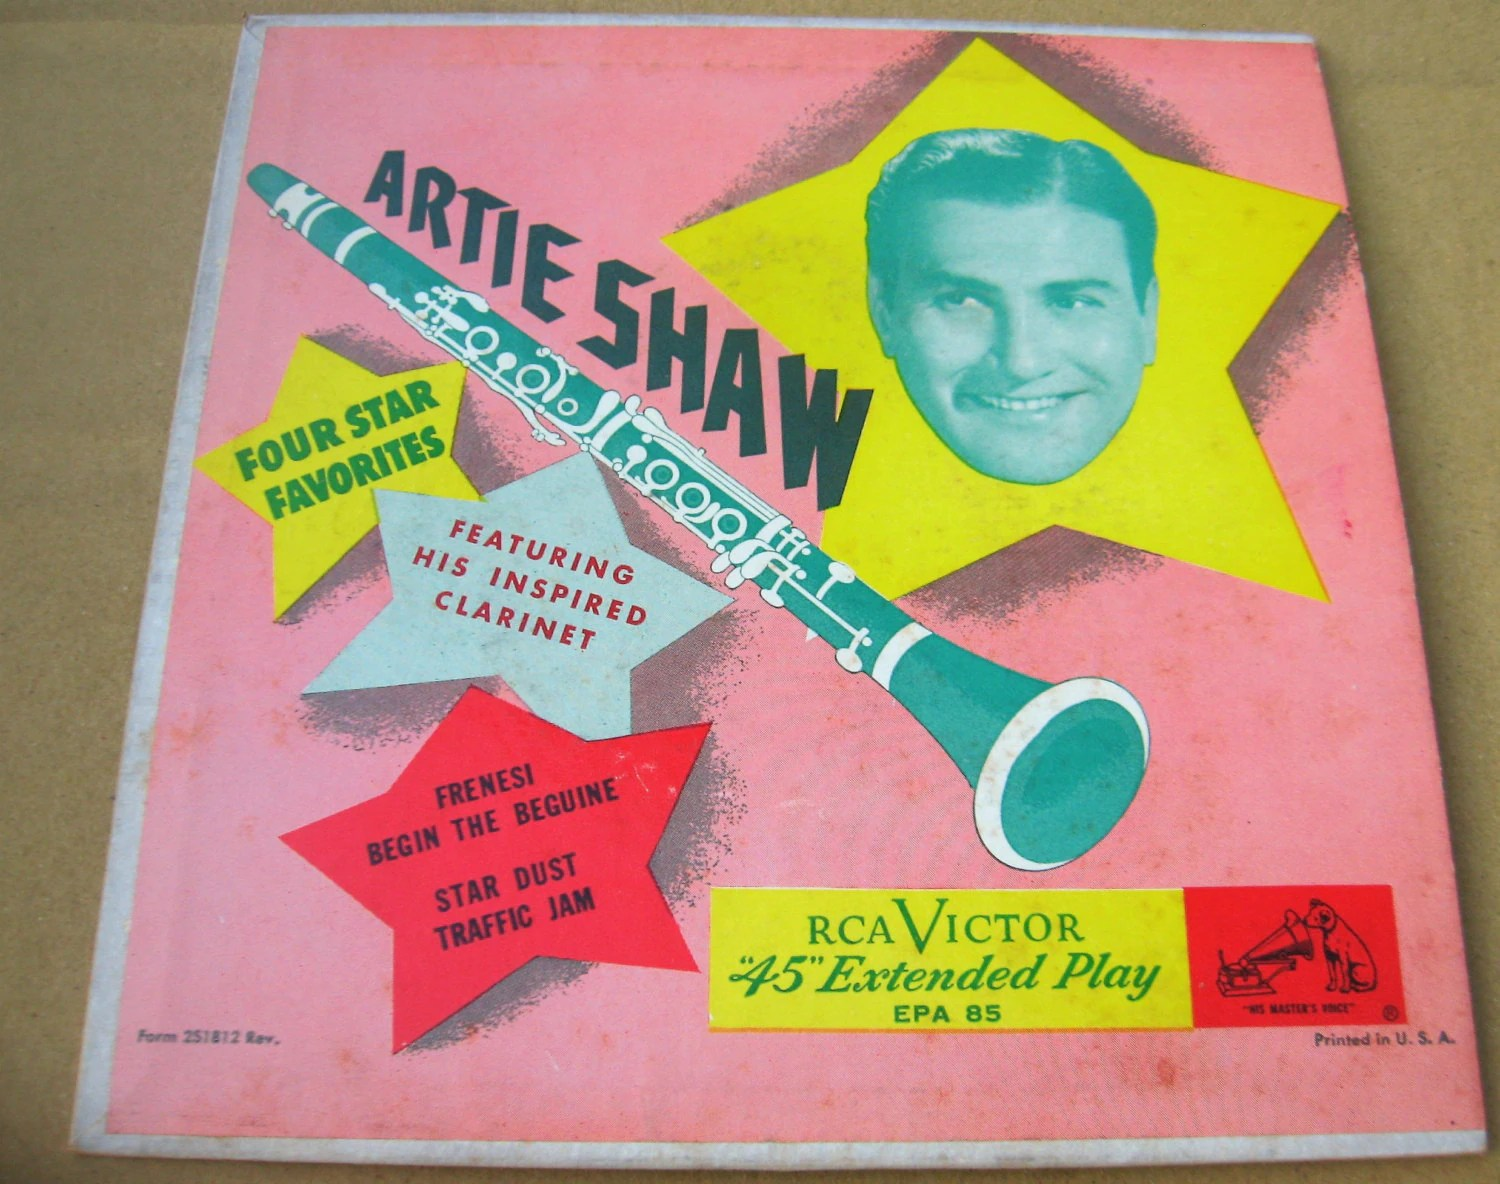 Artie Shaw Genre Vinyl Artie Shaw Rca Victor Ep 45 E2pw 0139 Very Good Condition Not Scratched